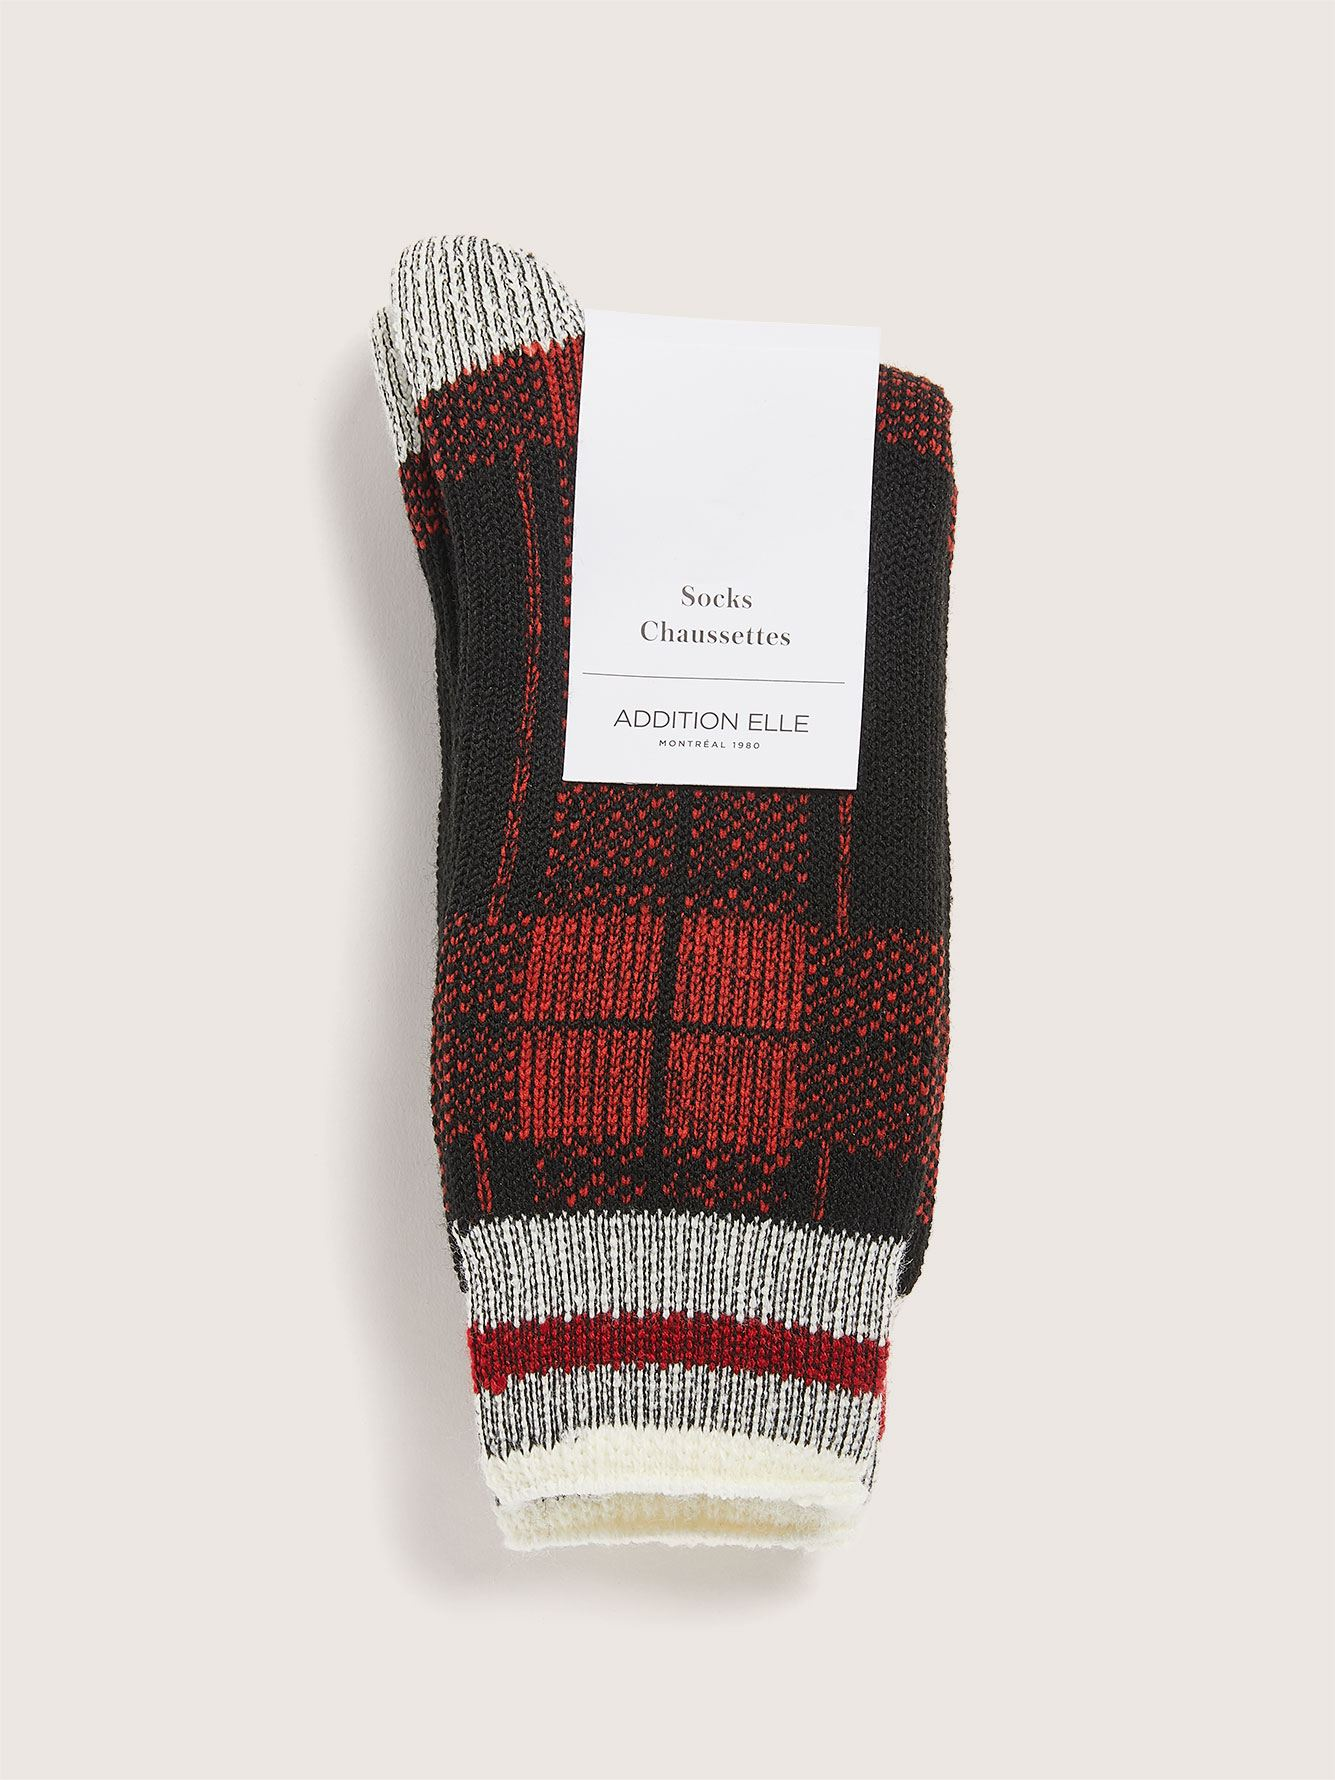 Plaid Cozy Socks - Addition Elle